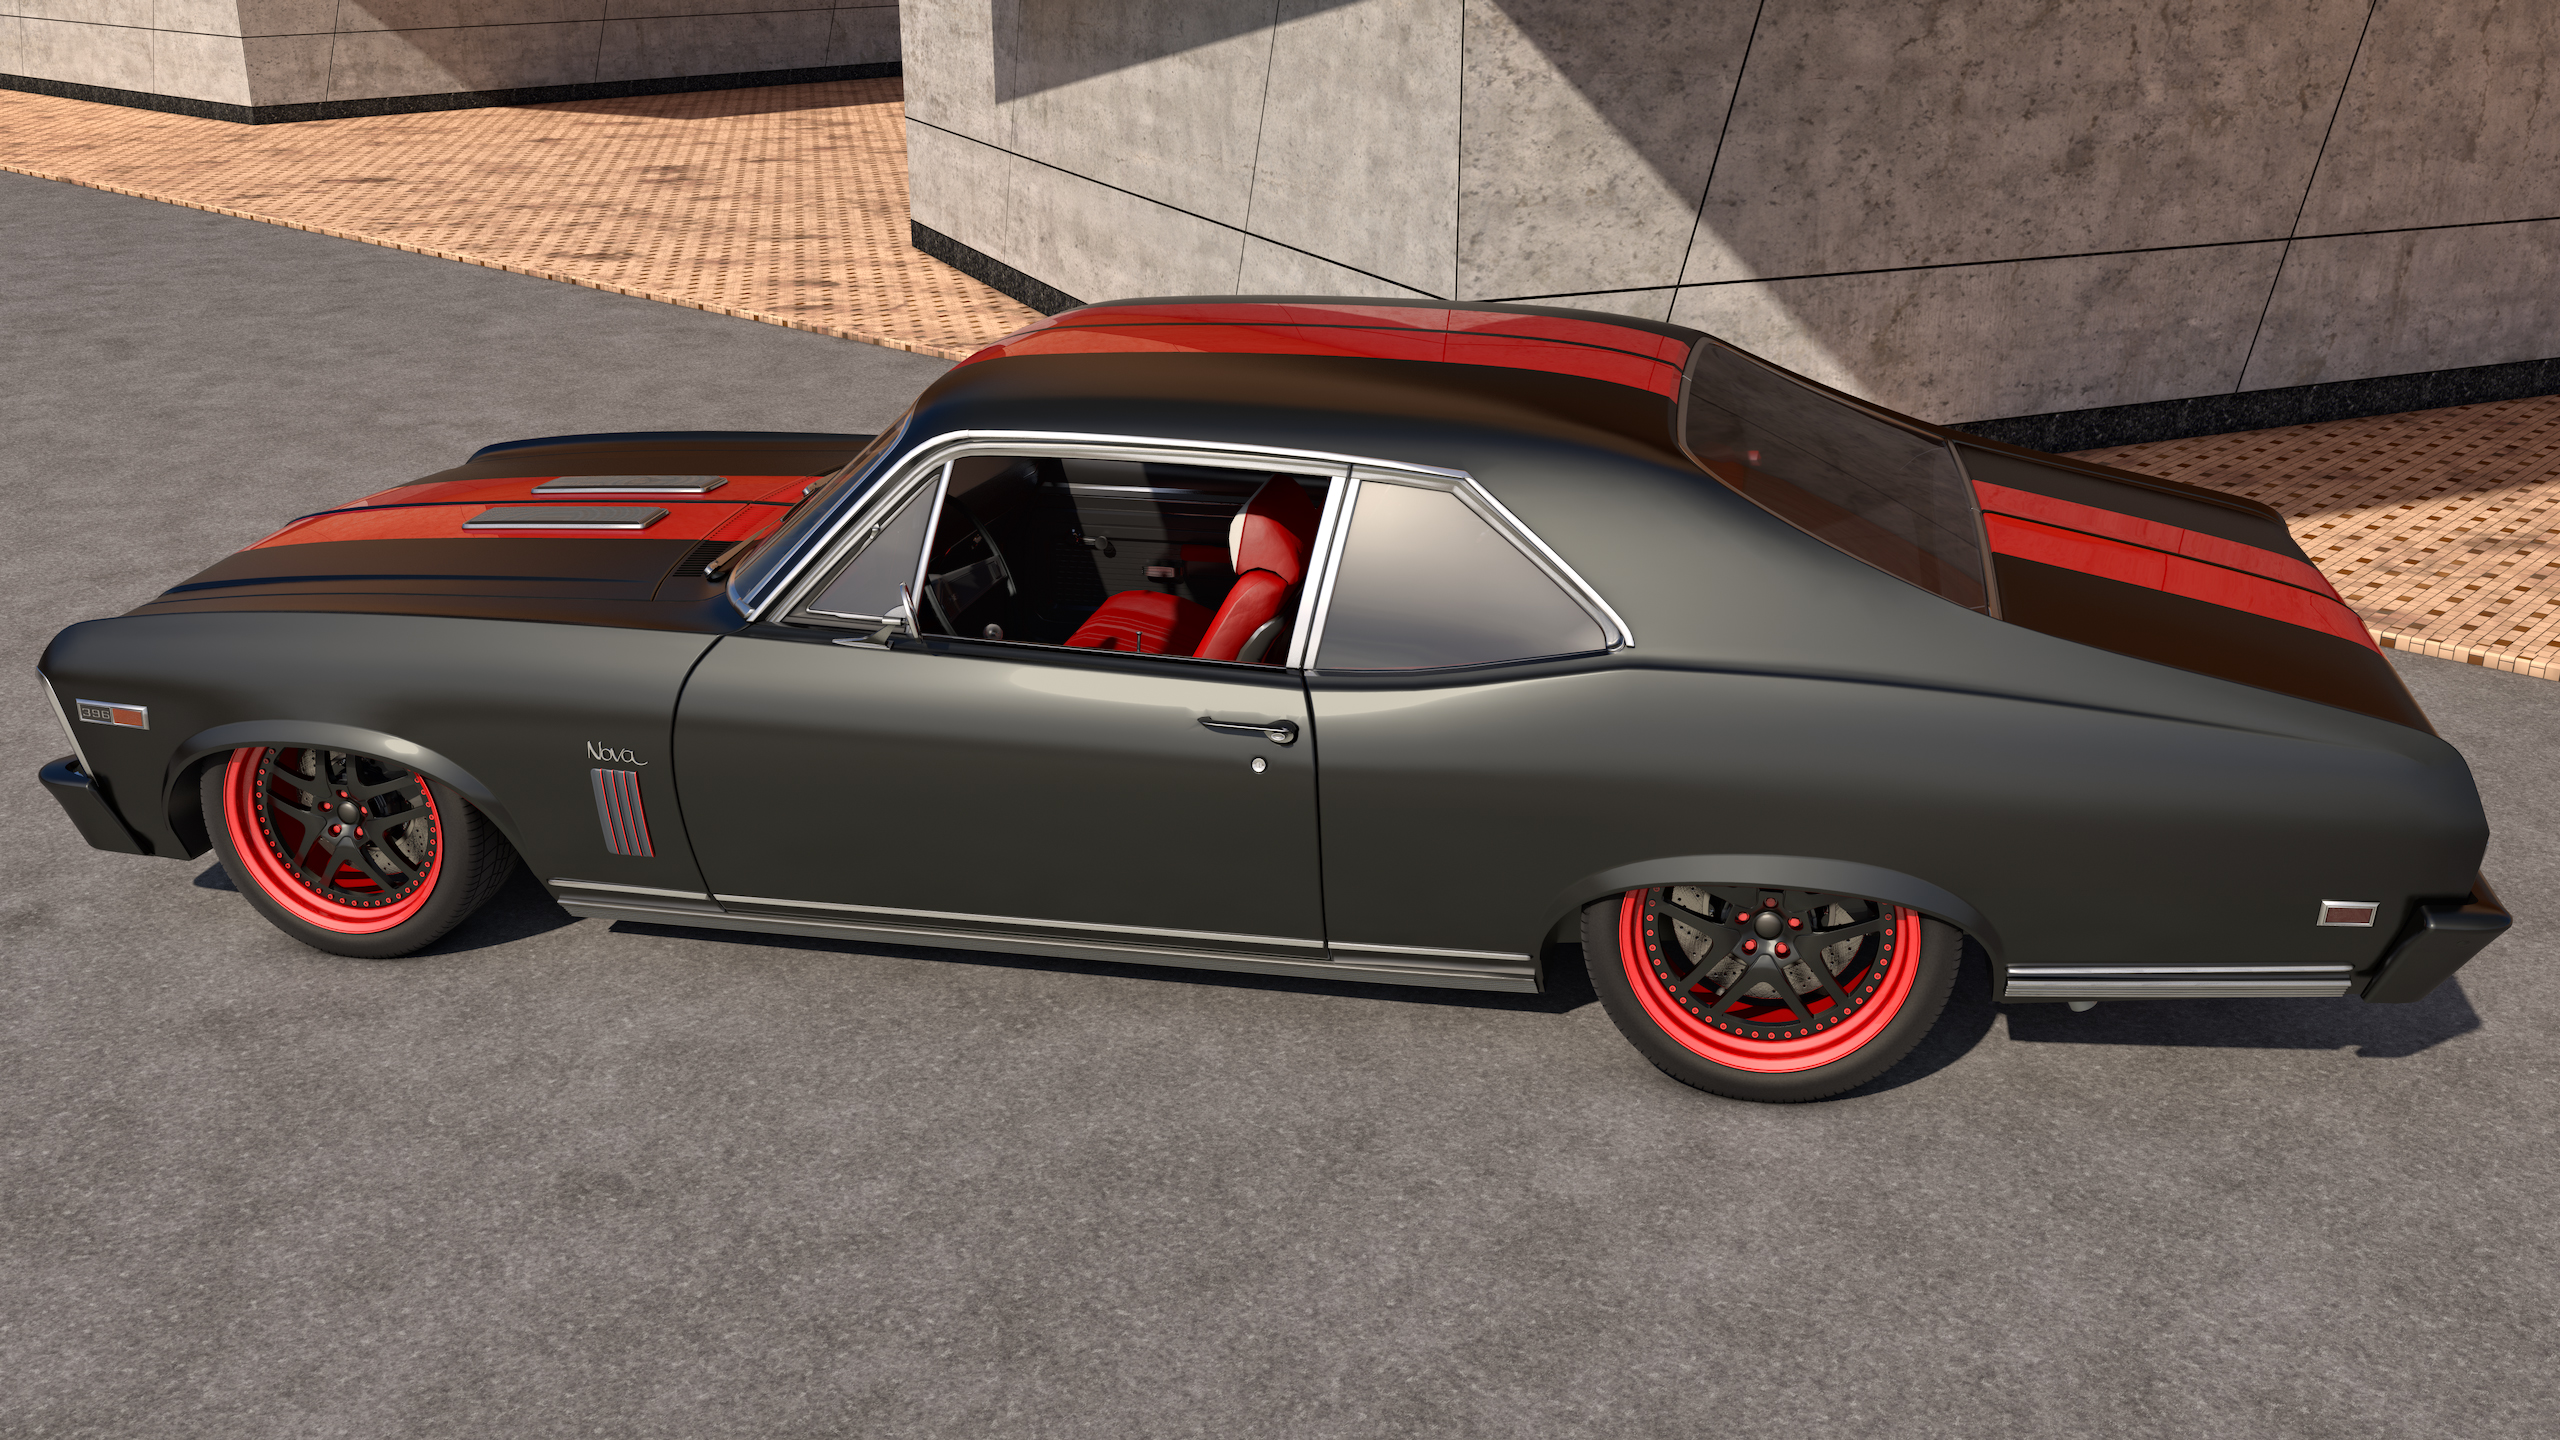 1969 chevy nova ss by samcurry on deviantart